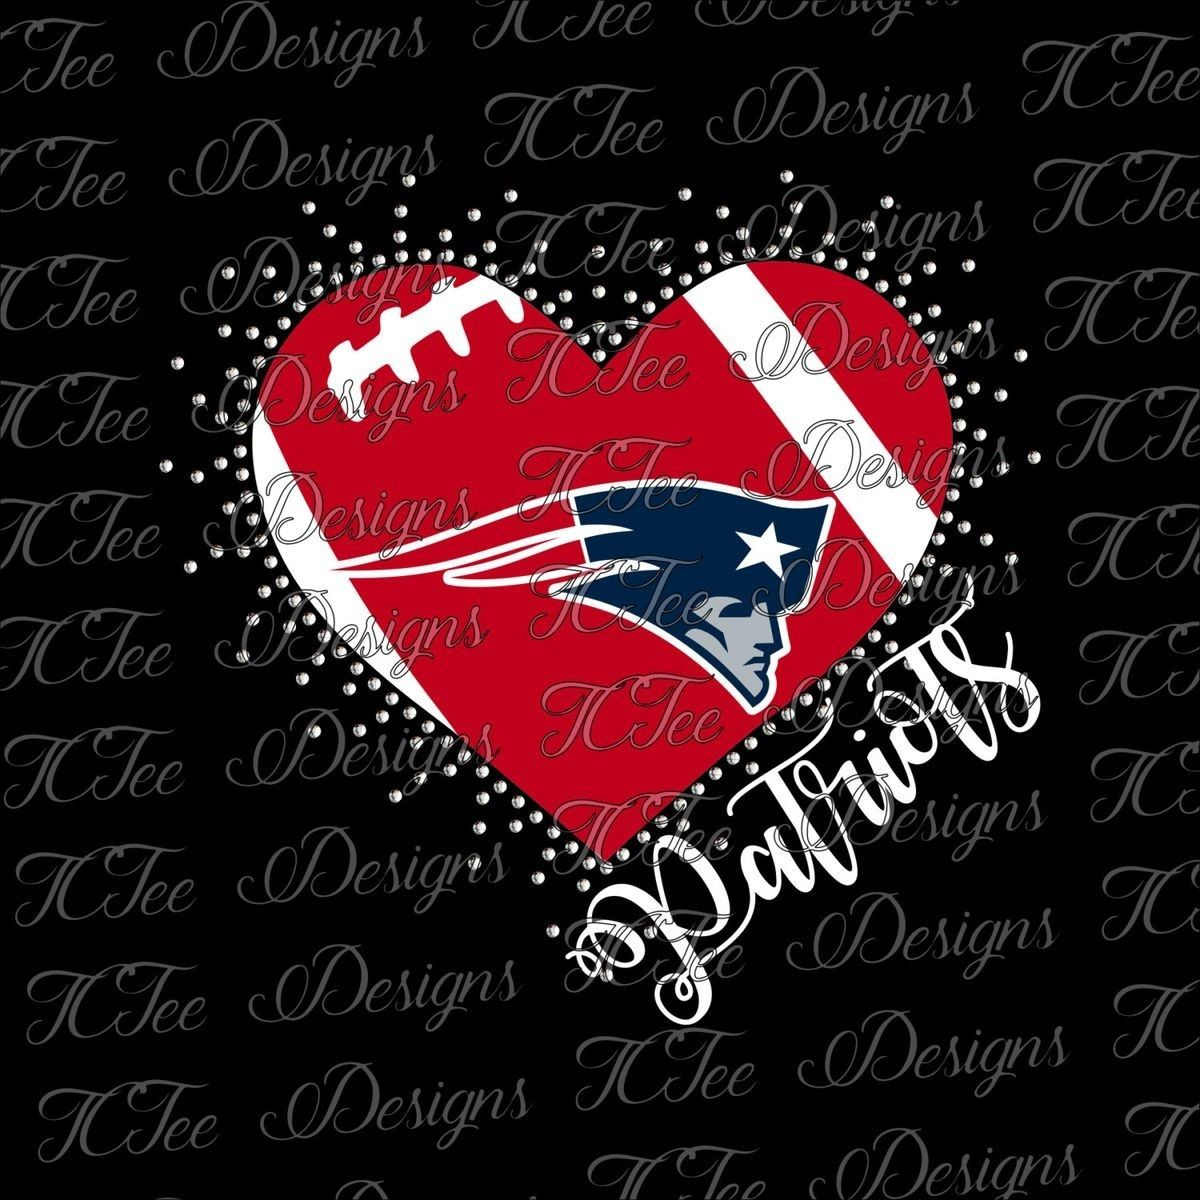 New England Patriots New England Patriots Patriots New England Patriots Football